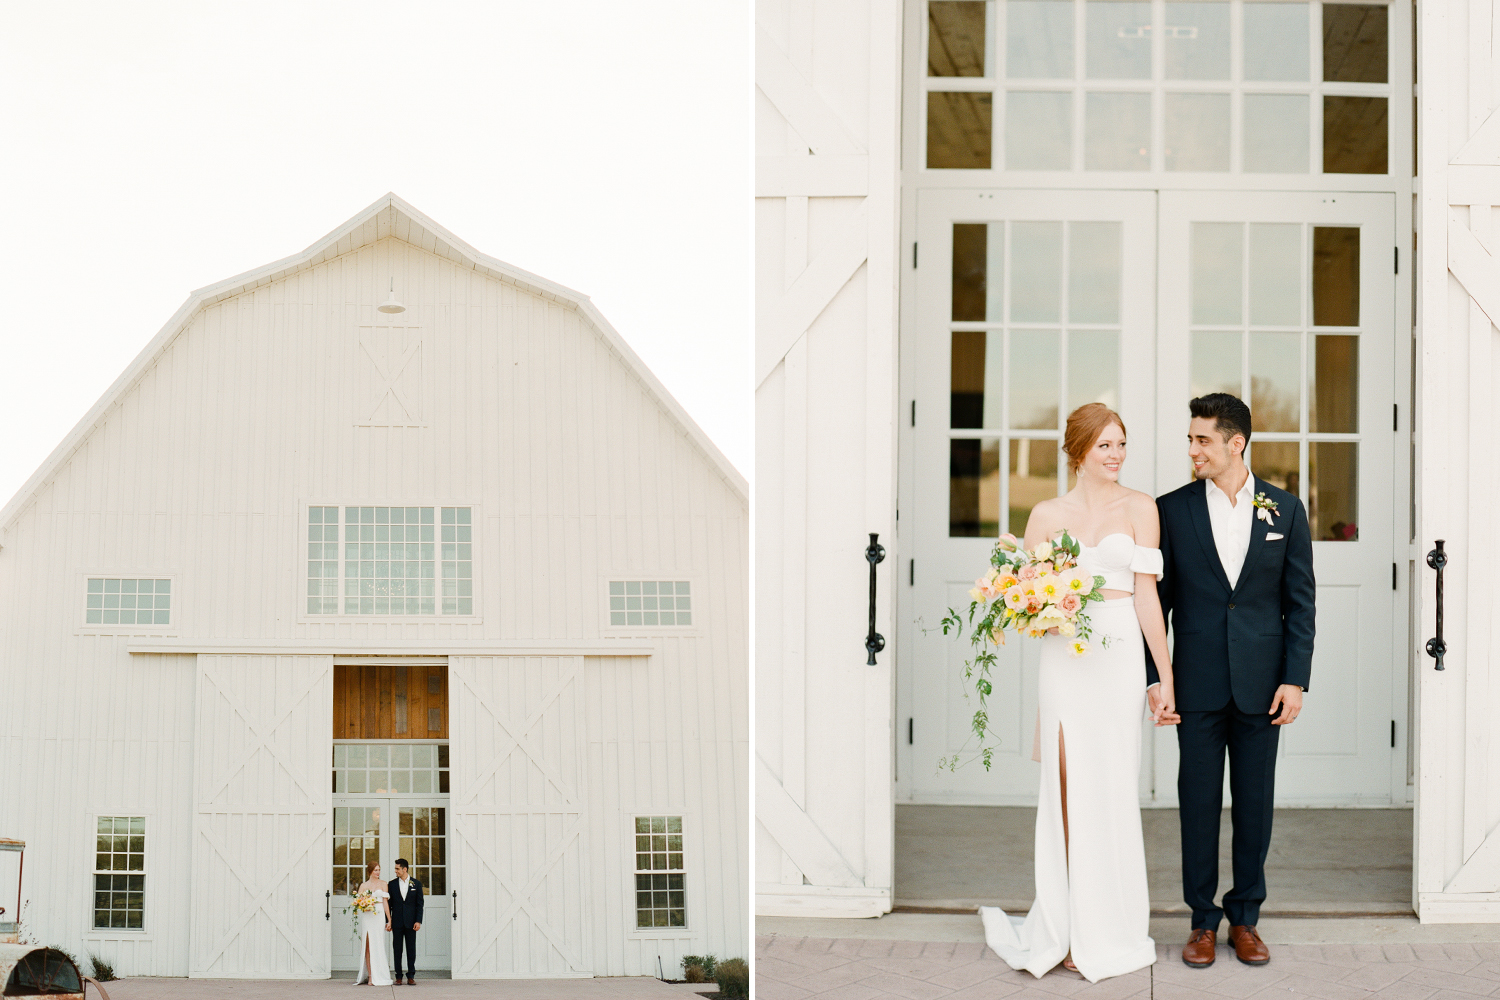 White-Sparrow-Barn-Bride-and-Groom.jpg